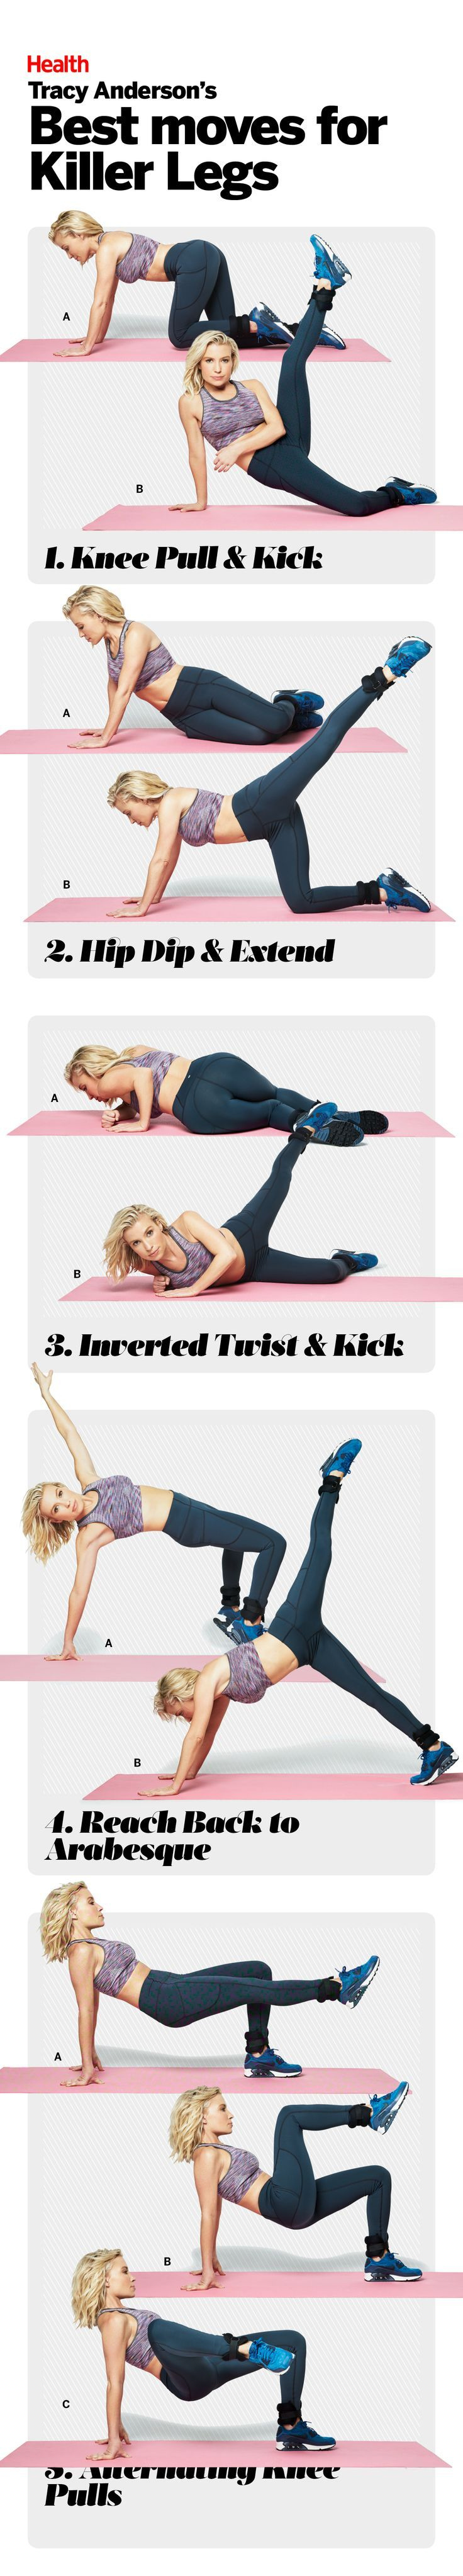 Tracy Anderson's Best Moves for Killer Legs: Follow these five moves to get your legs slim, toned, and super sexy.